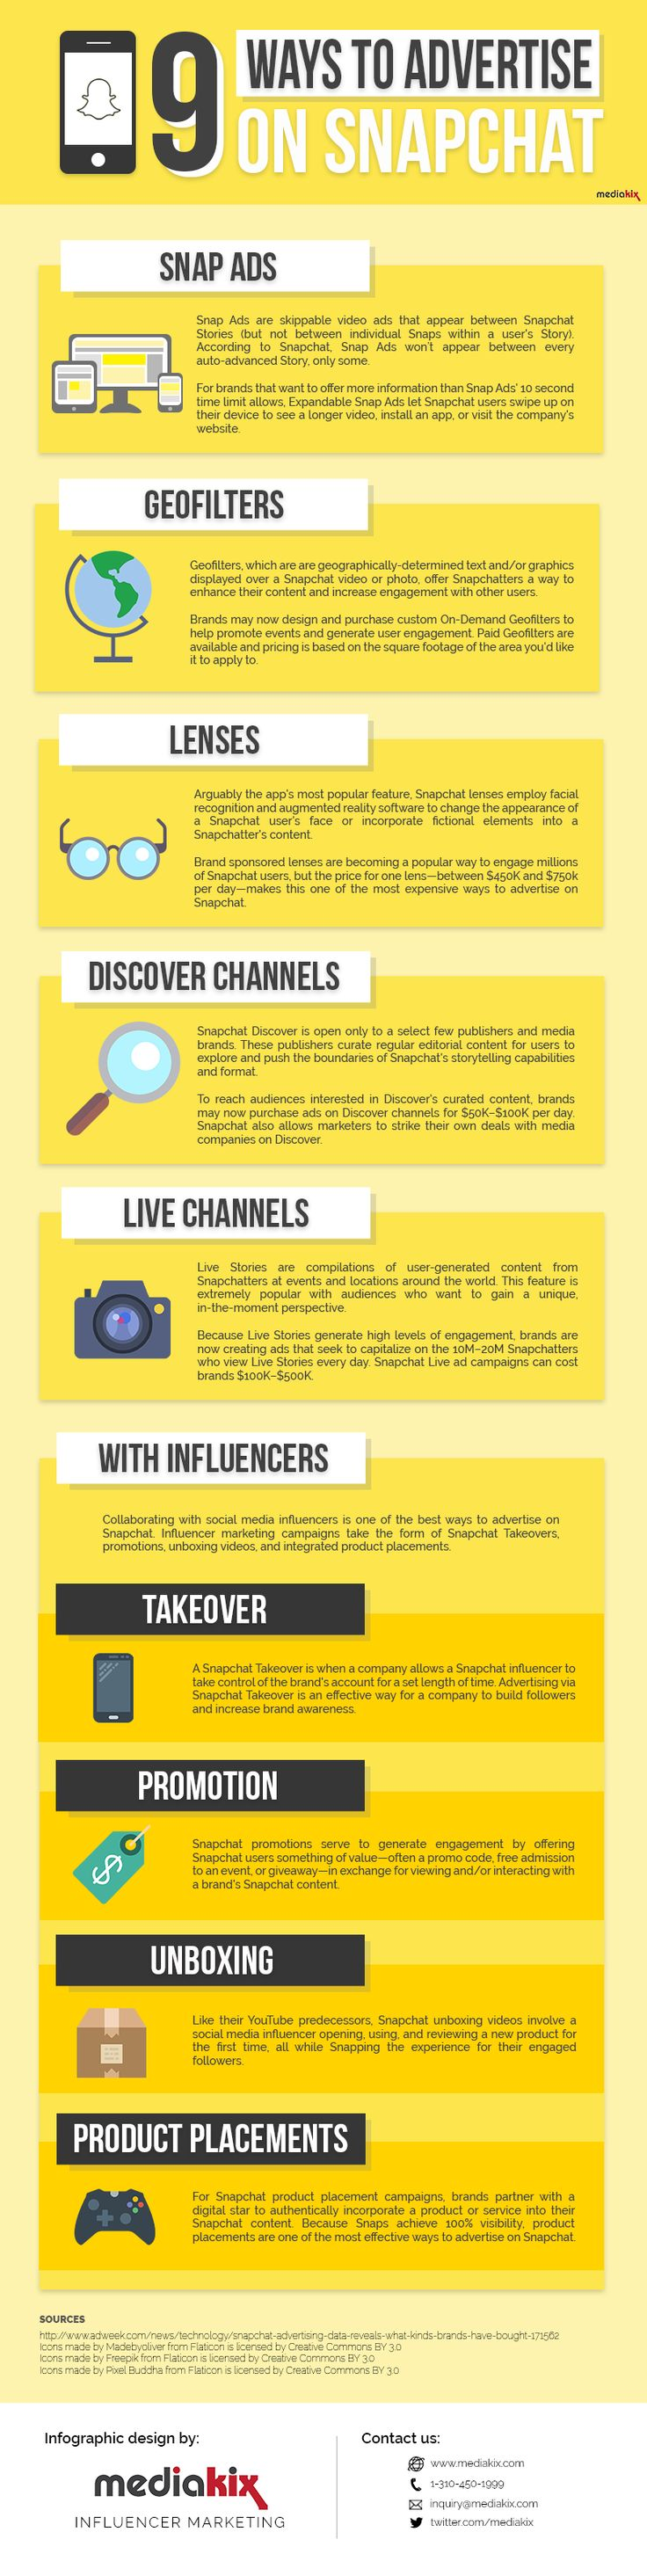 Snapchat is a force to be reckoned with when it comes to attractingthe minds, hearts, and eyes ofsocial users -- especially younger social users. On any given day, Snapchat reaches 41% of all 18 to 34 year-olds in the United States. --Nielsen